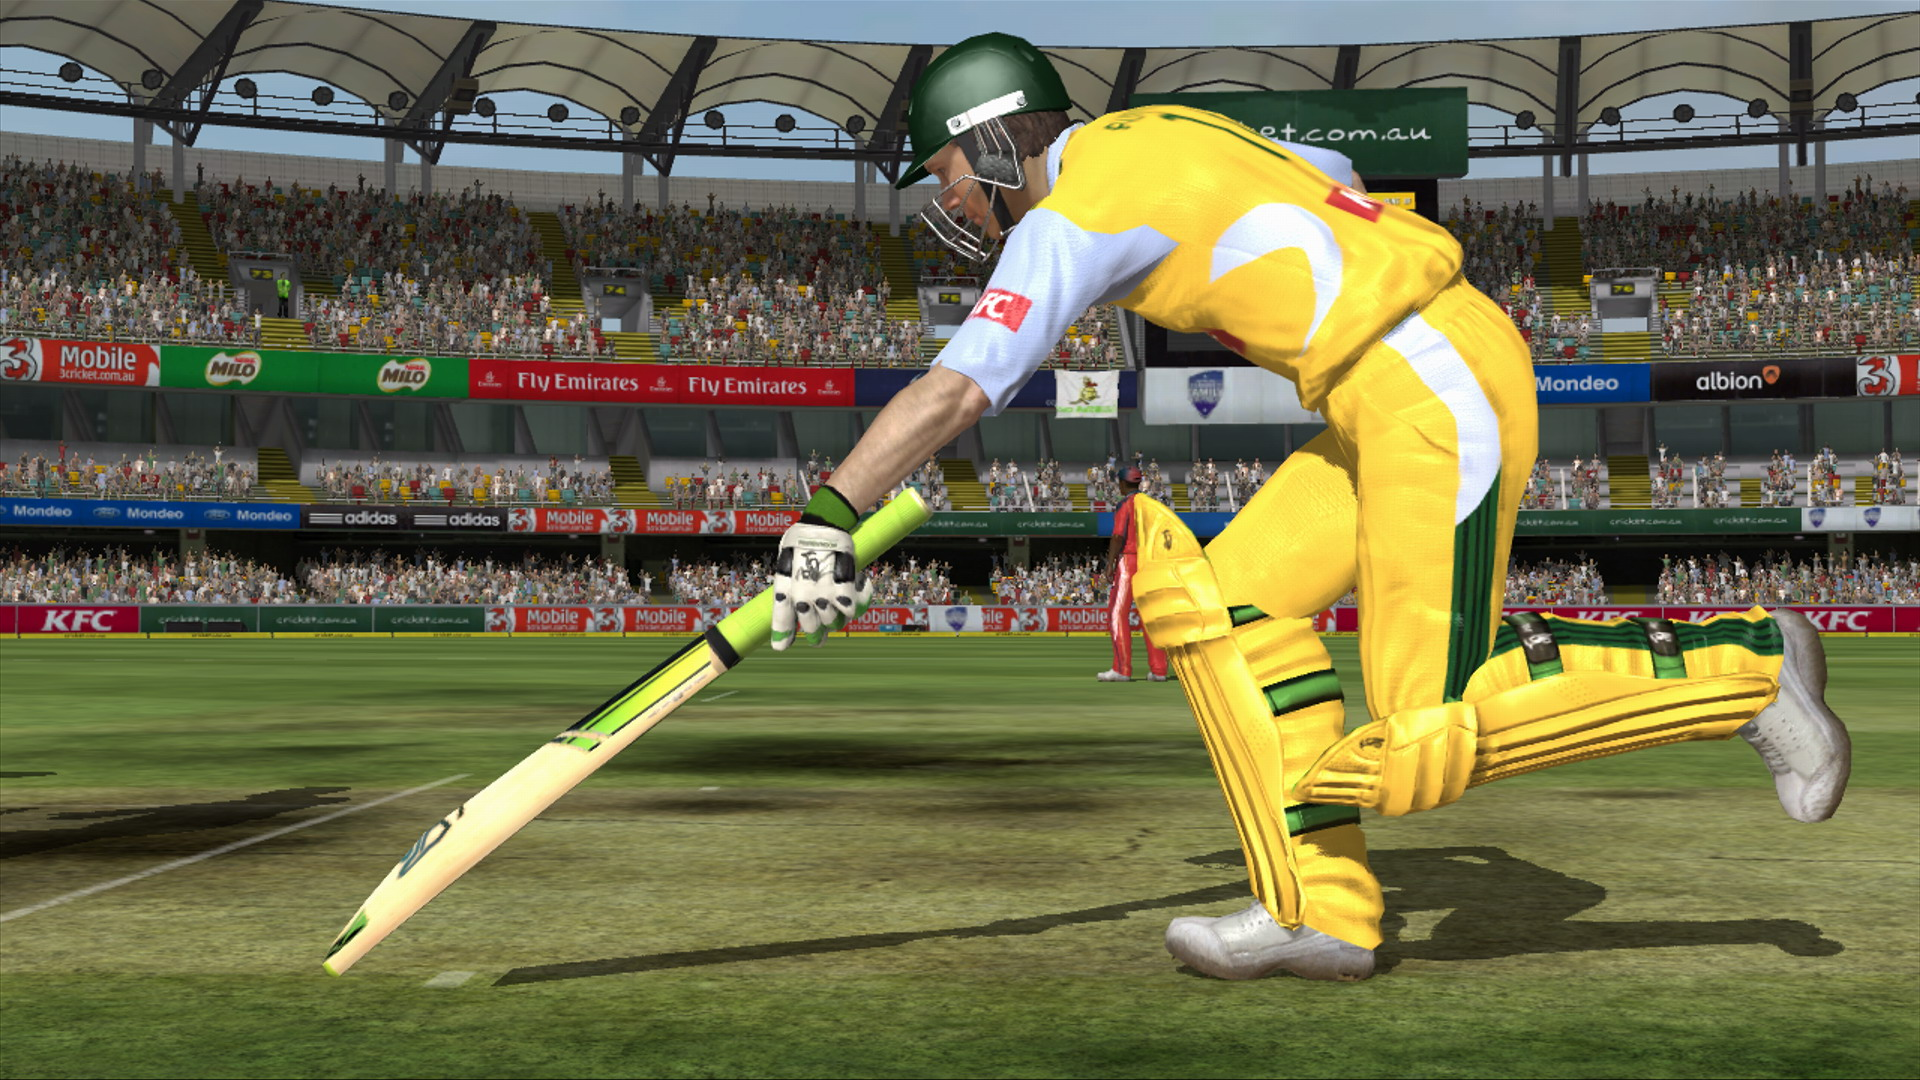 download cricket games for pc free 2009